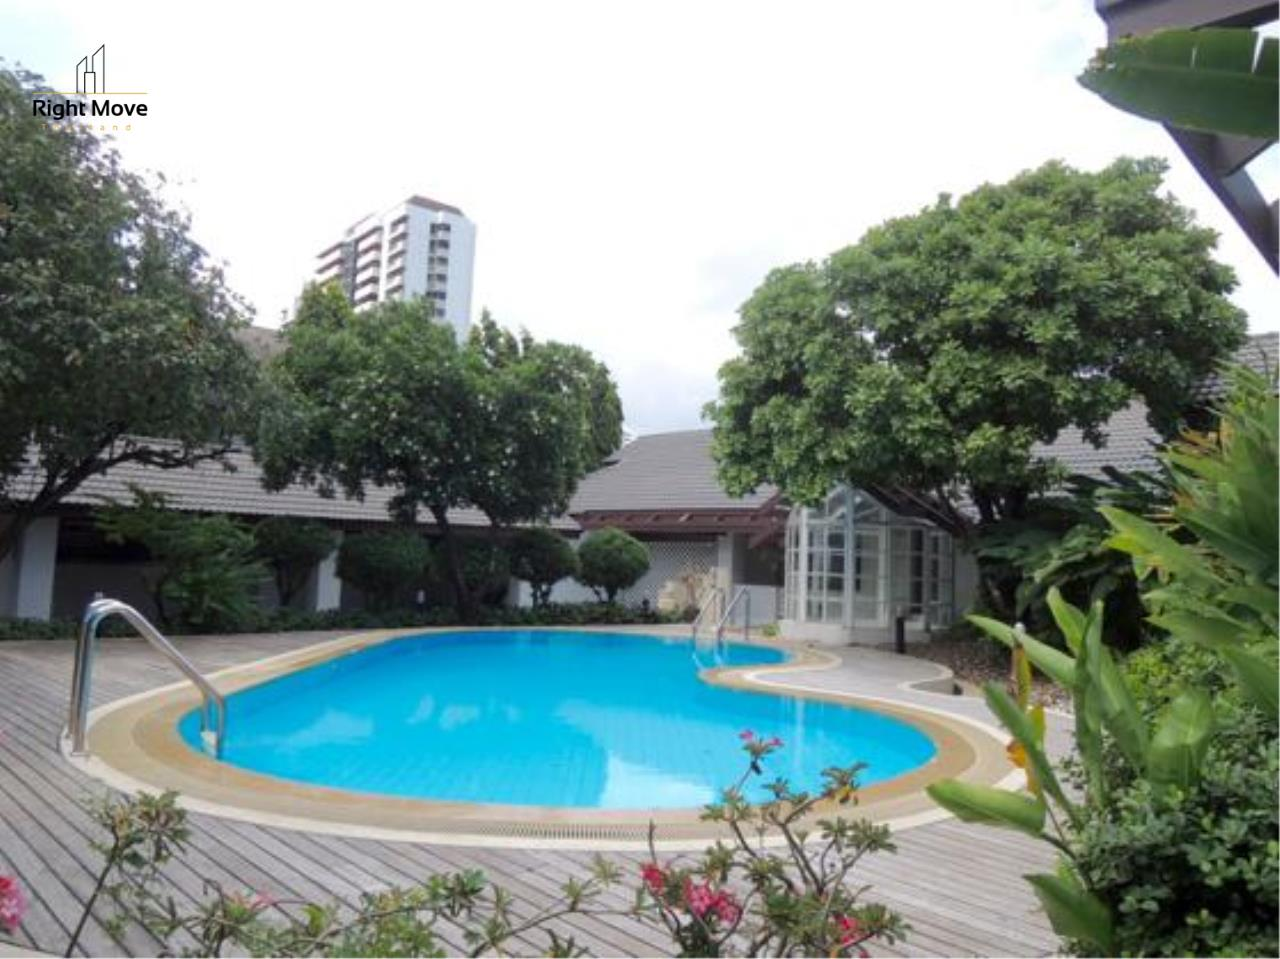 Right Move Thailand Agency's HR663 House With Private Pool For Rent 350,000 THB 4 Bedrooms 1000 Sqm 2